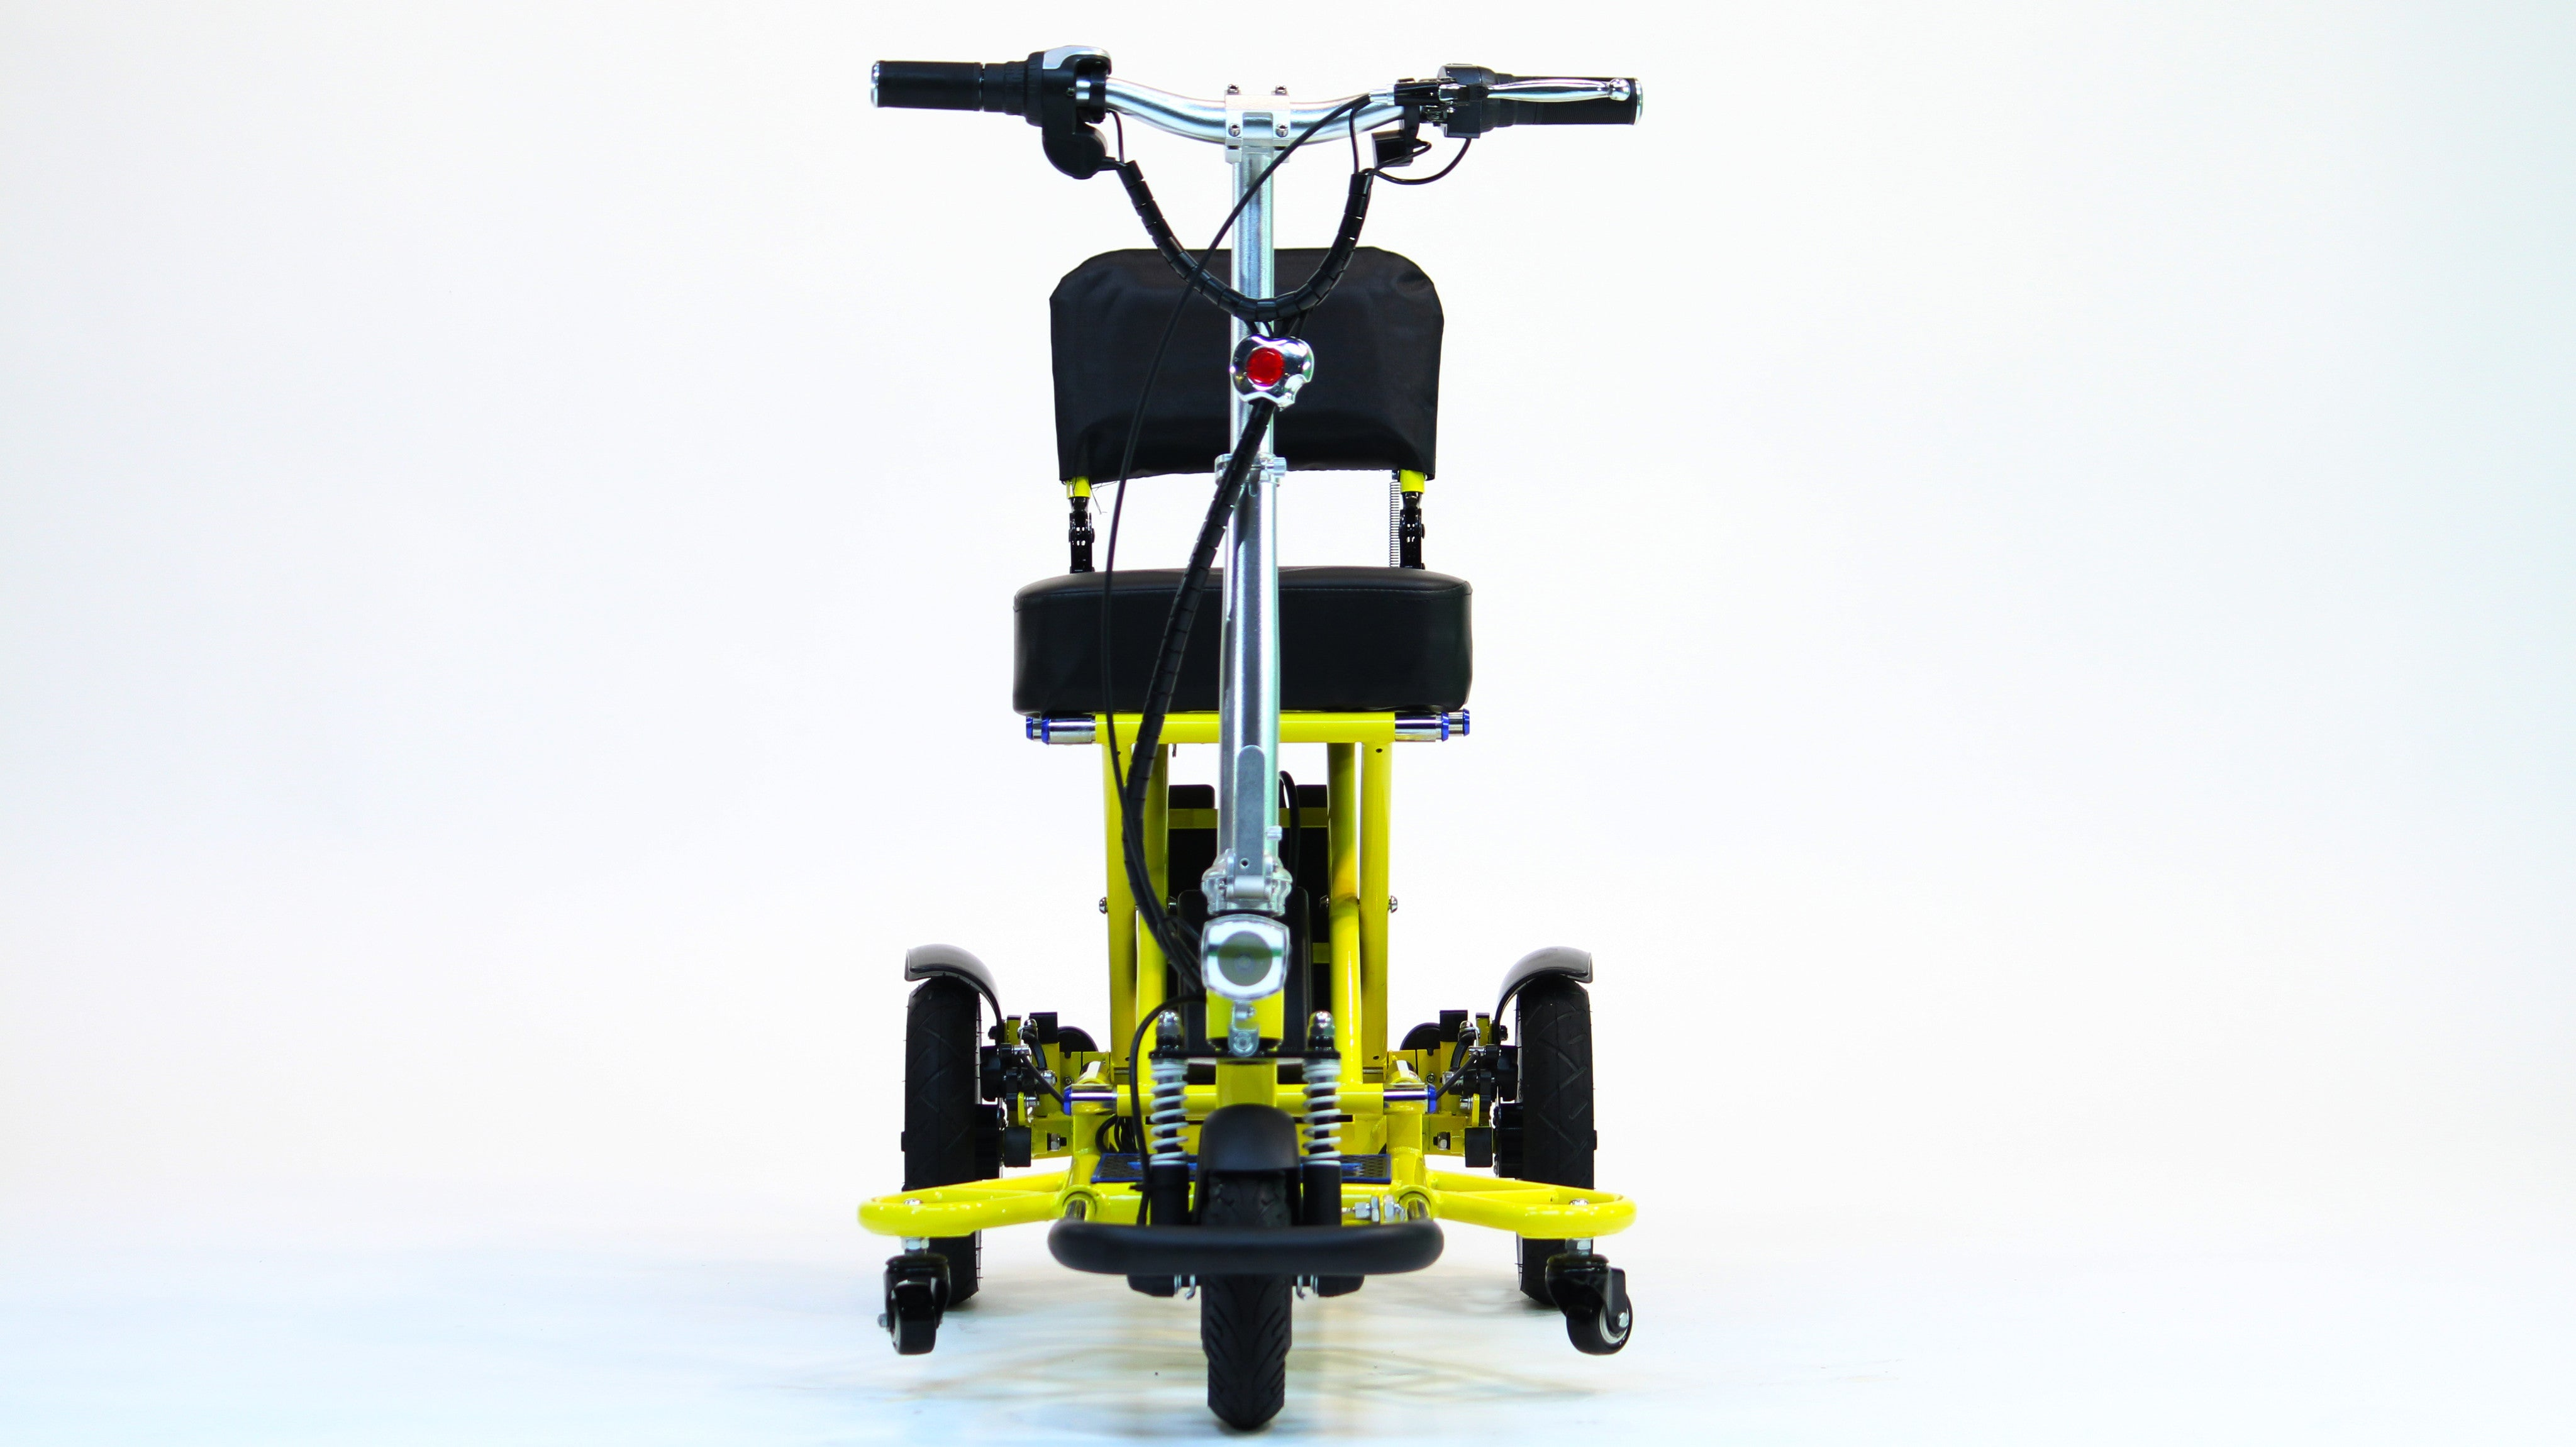 Enhance Mobility - Triaxe Sport Portable Folding Scooter - 3-Wheel